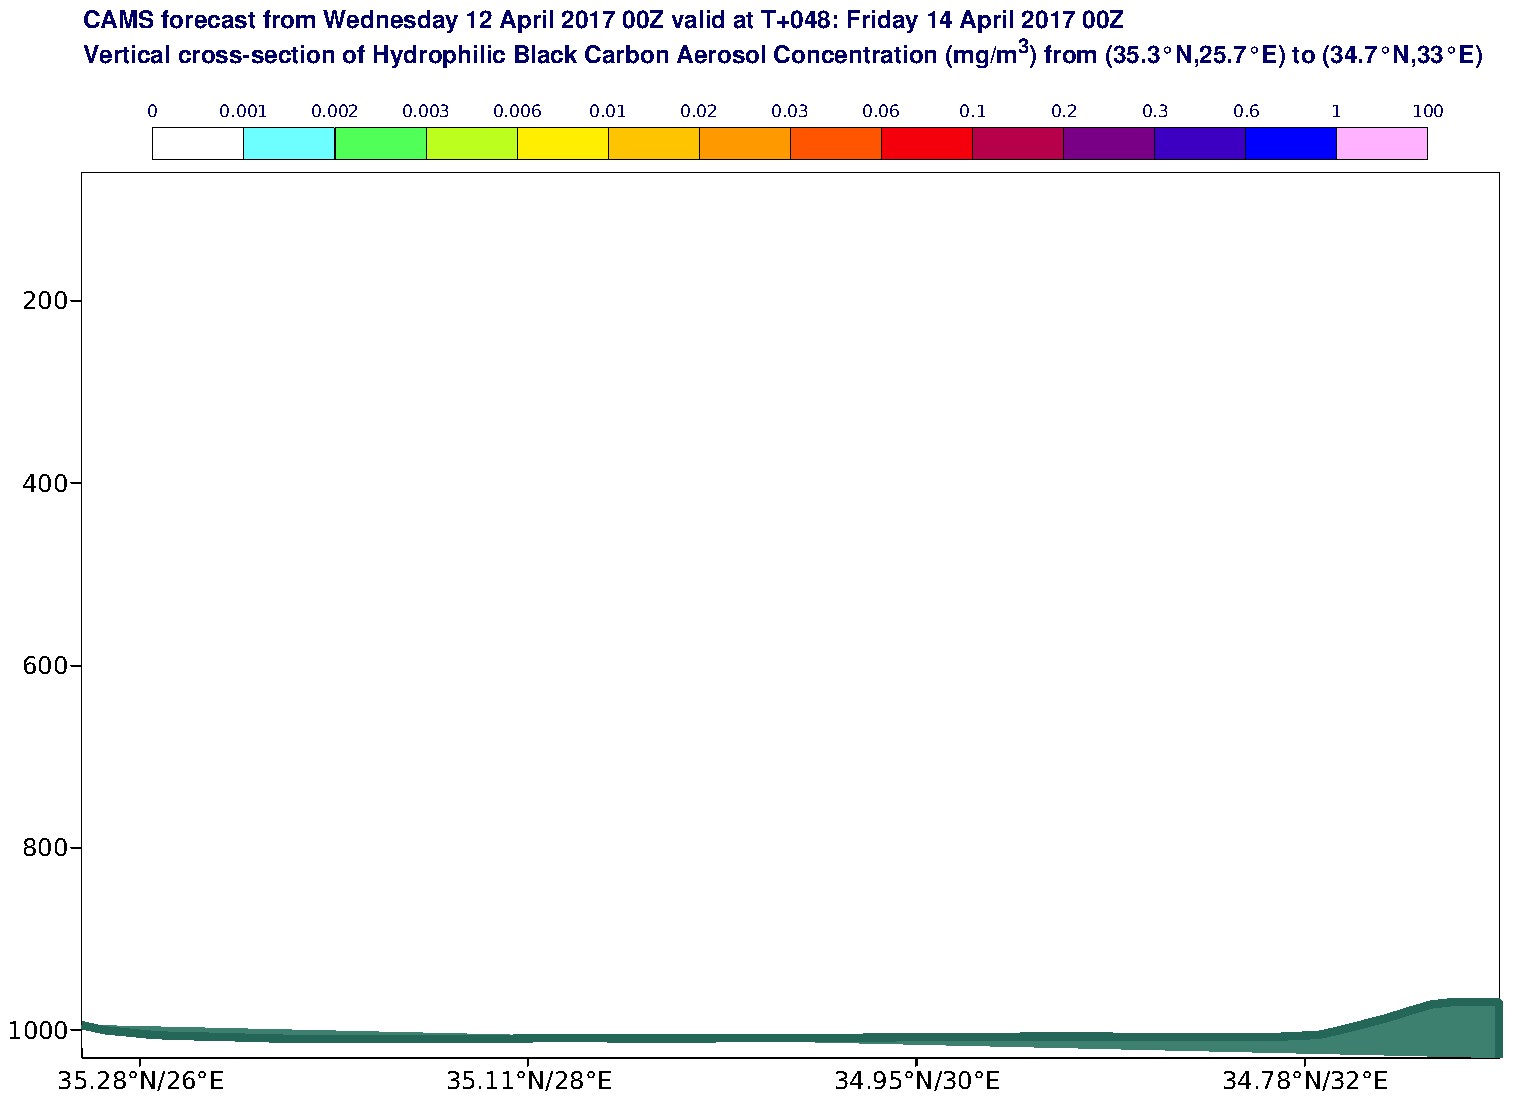 Vertical cross-section of Hydrophilic Black Carbon Aerosol Concentration (mg/m3) valid at T48 - 2017-04-14 00:00